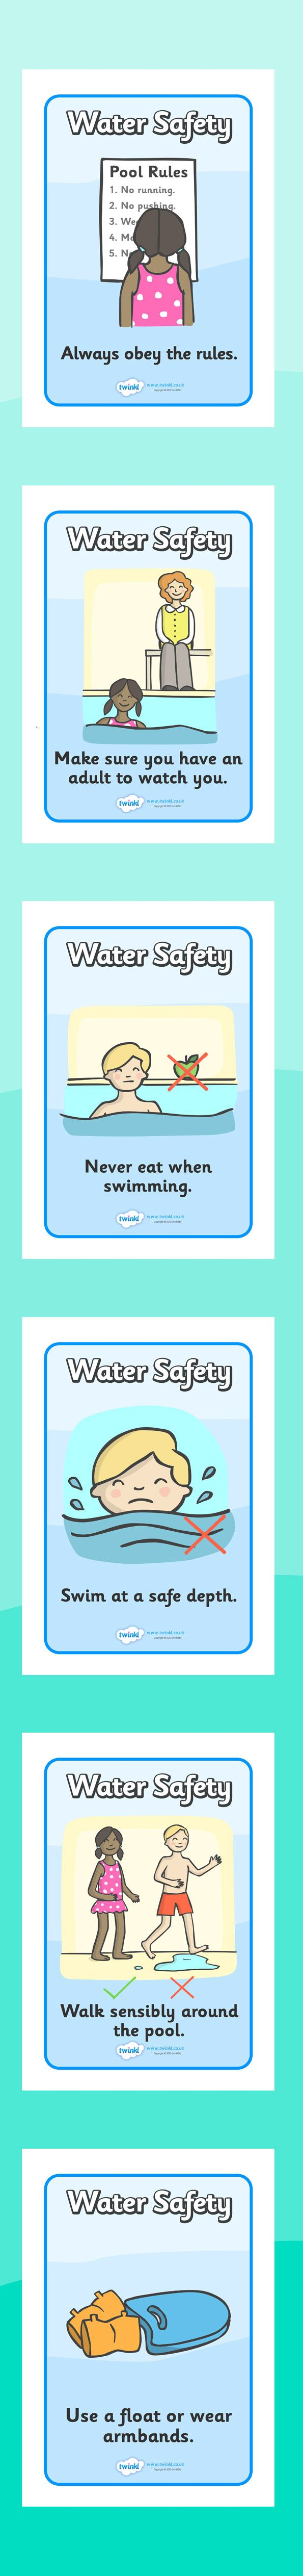 The seaside- Water safety display posters